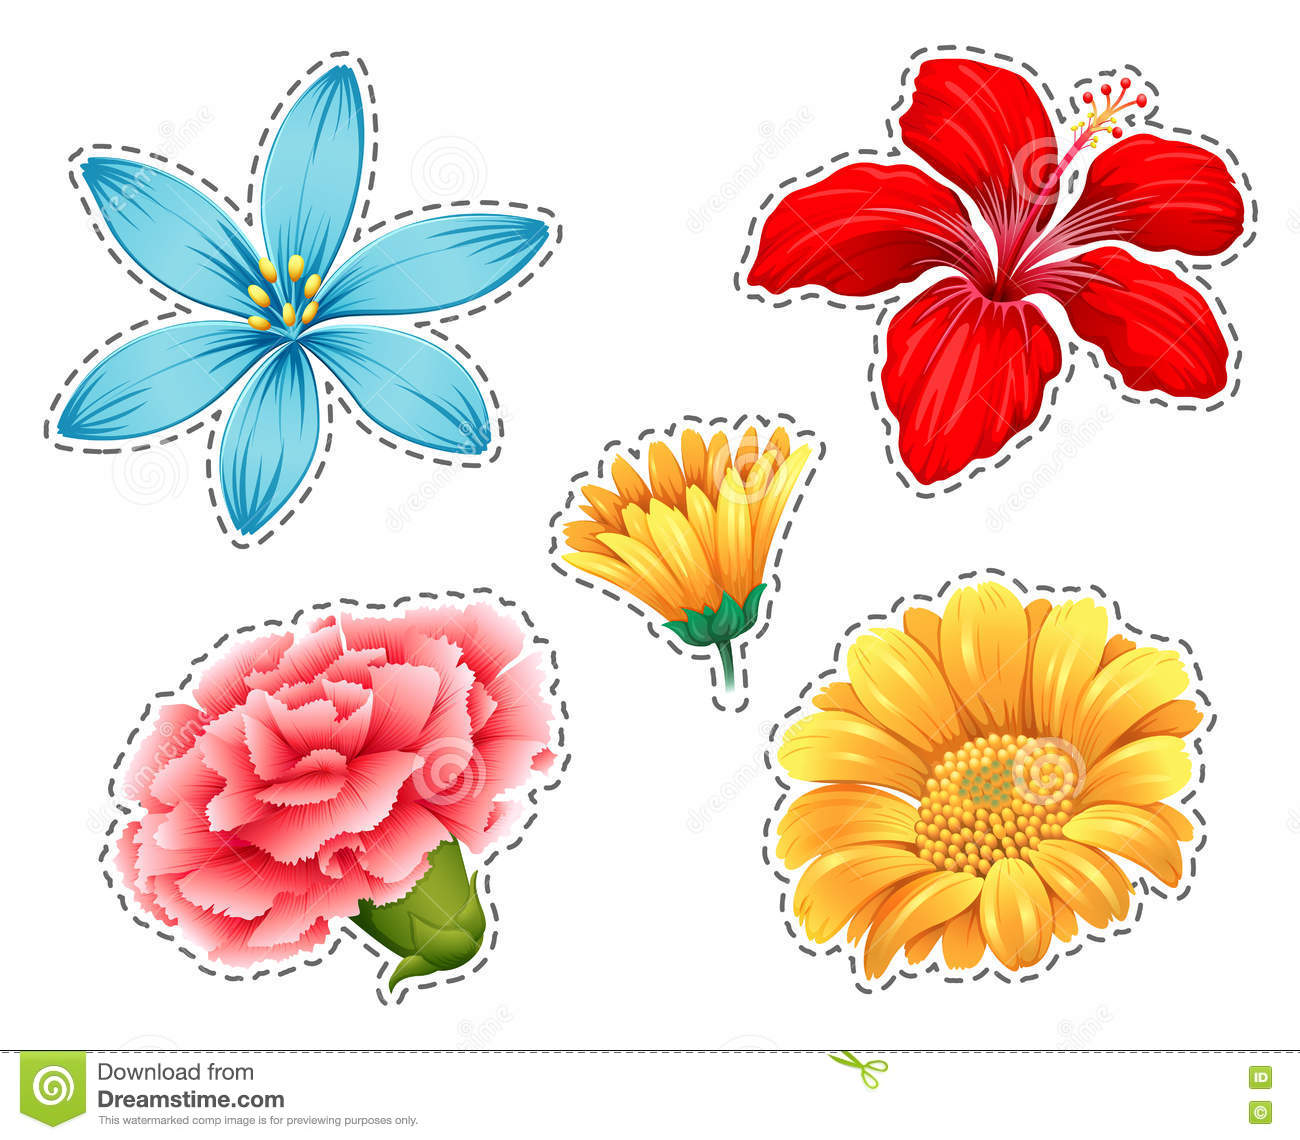 different types of flowers, Natural flower